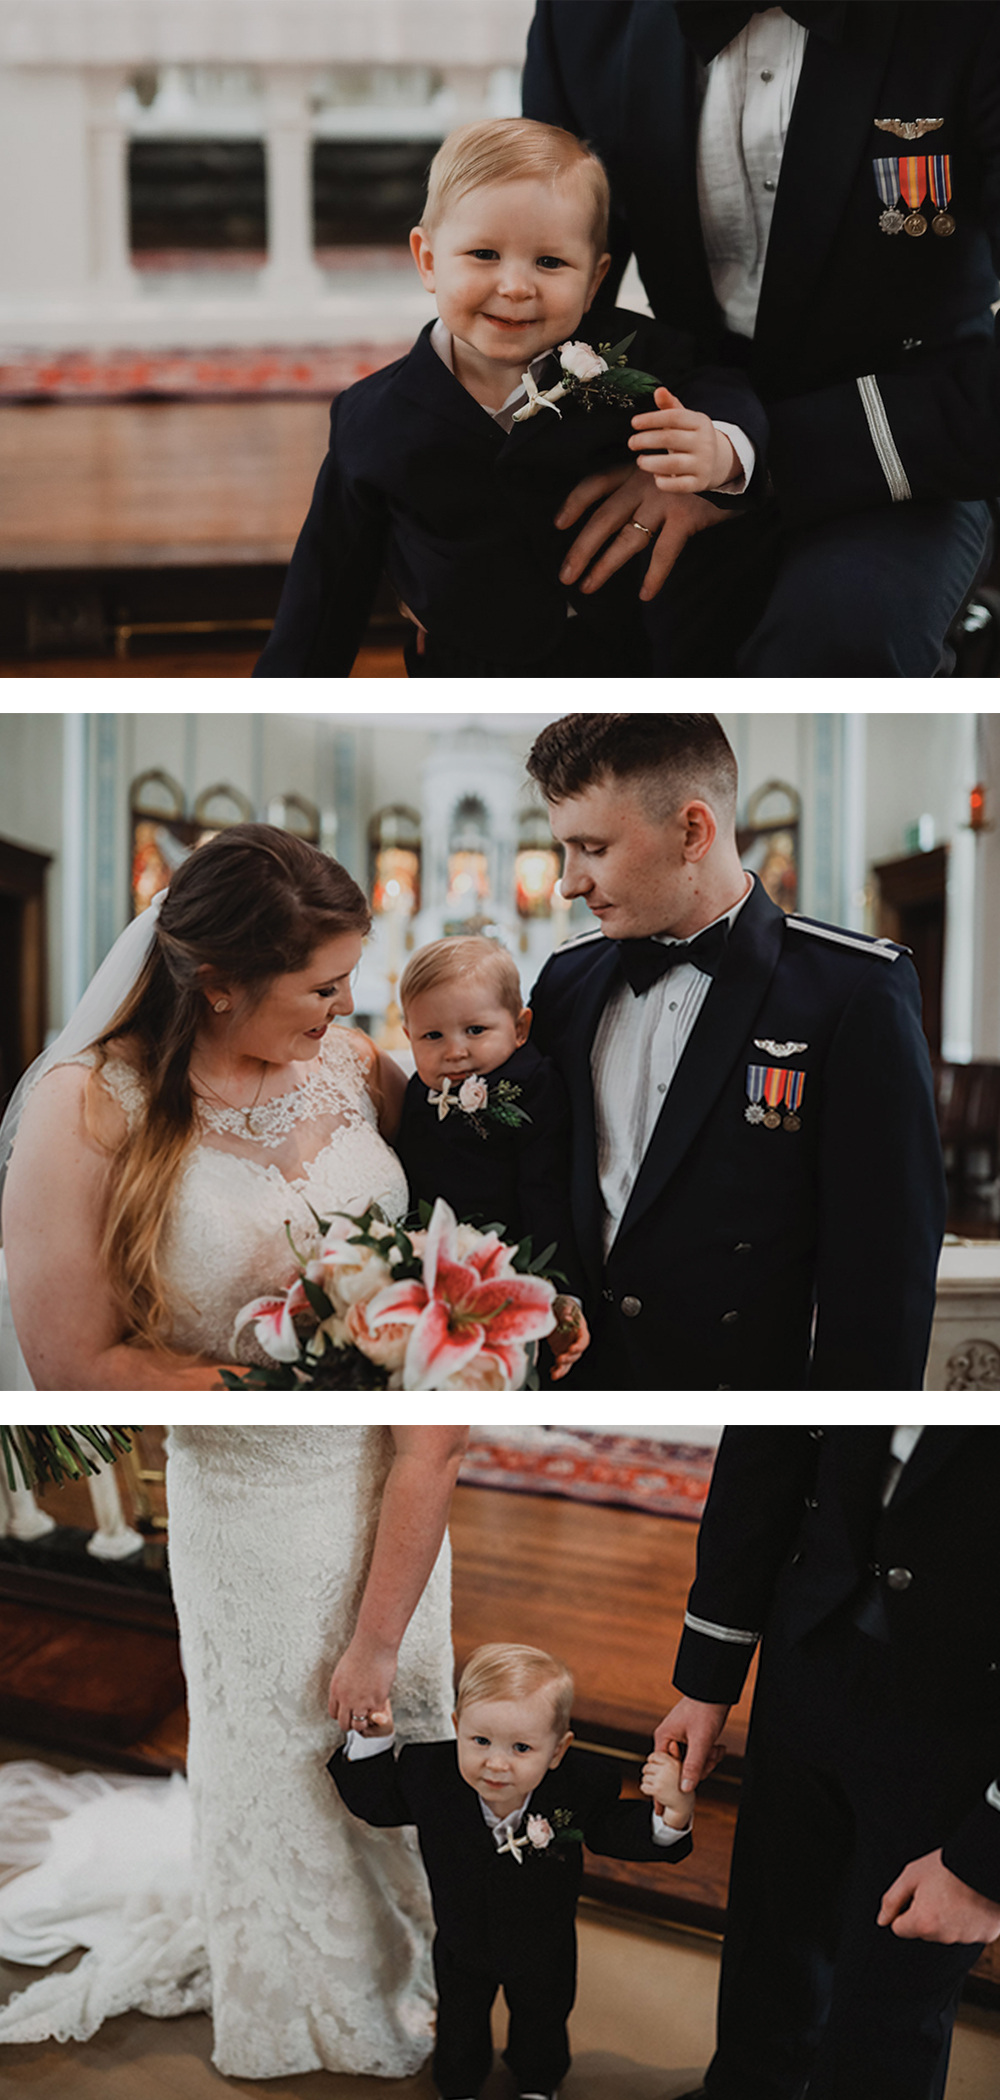 adorable ring bearer and parents after wedding ceremony